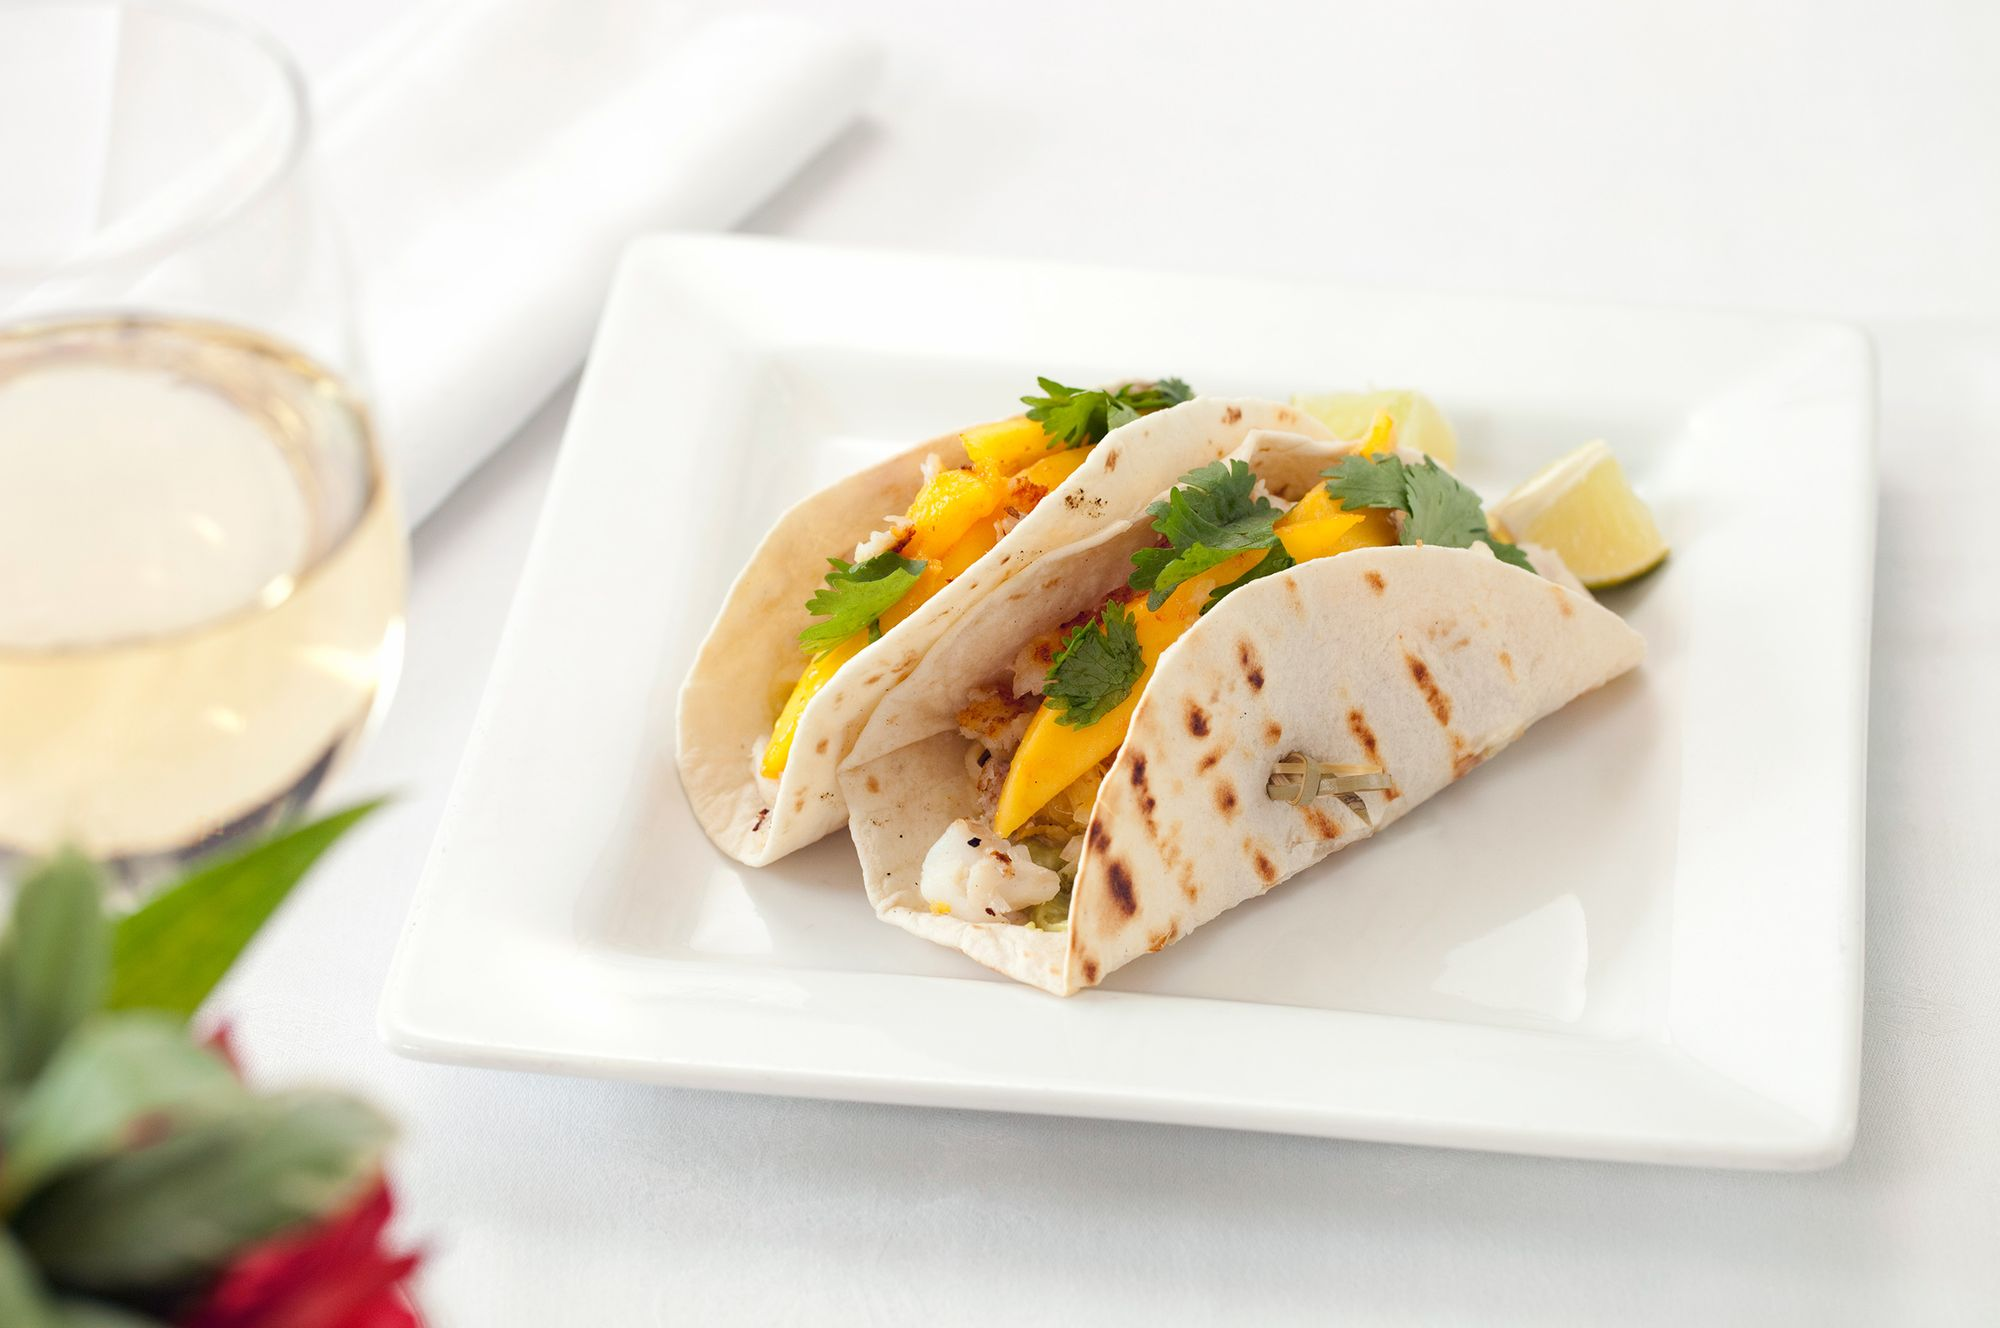 Fish taco food photograph.jpg